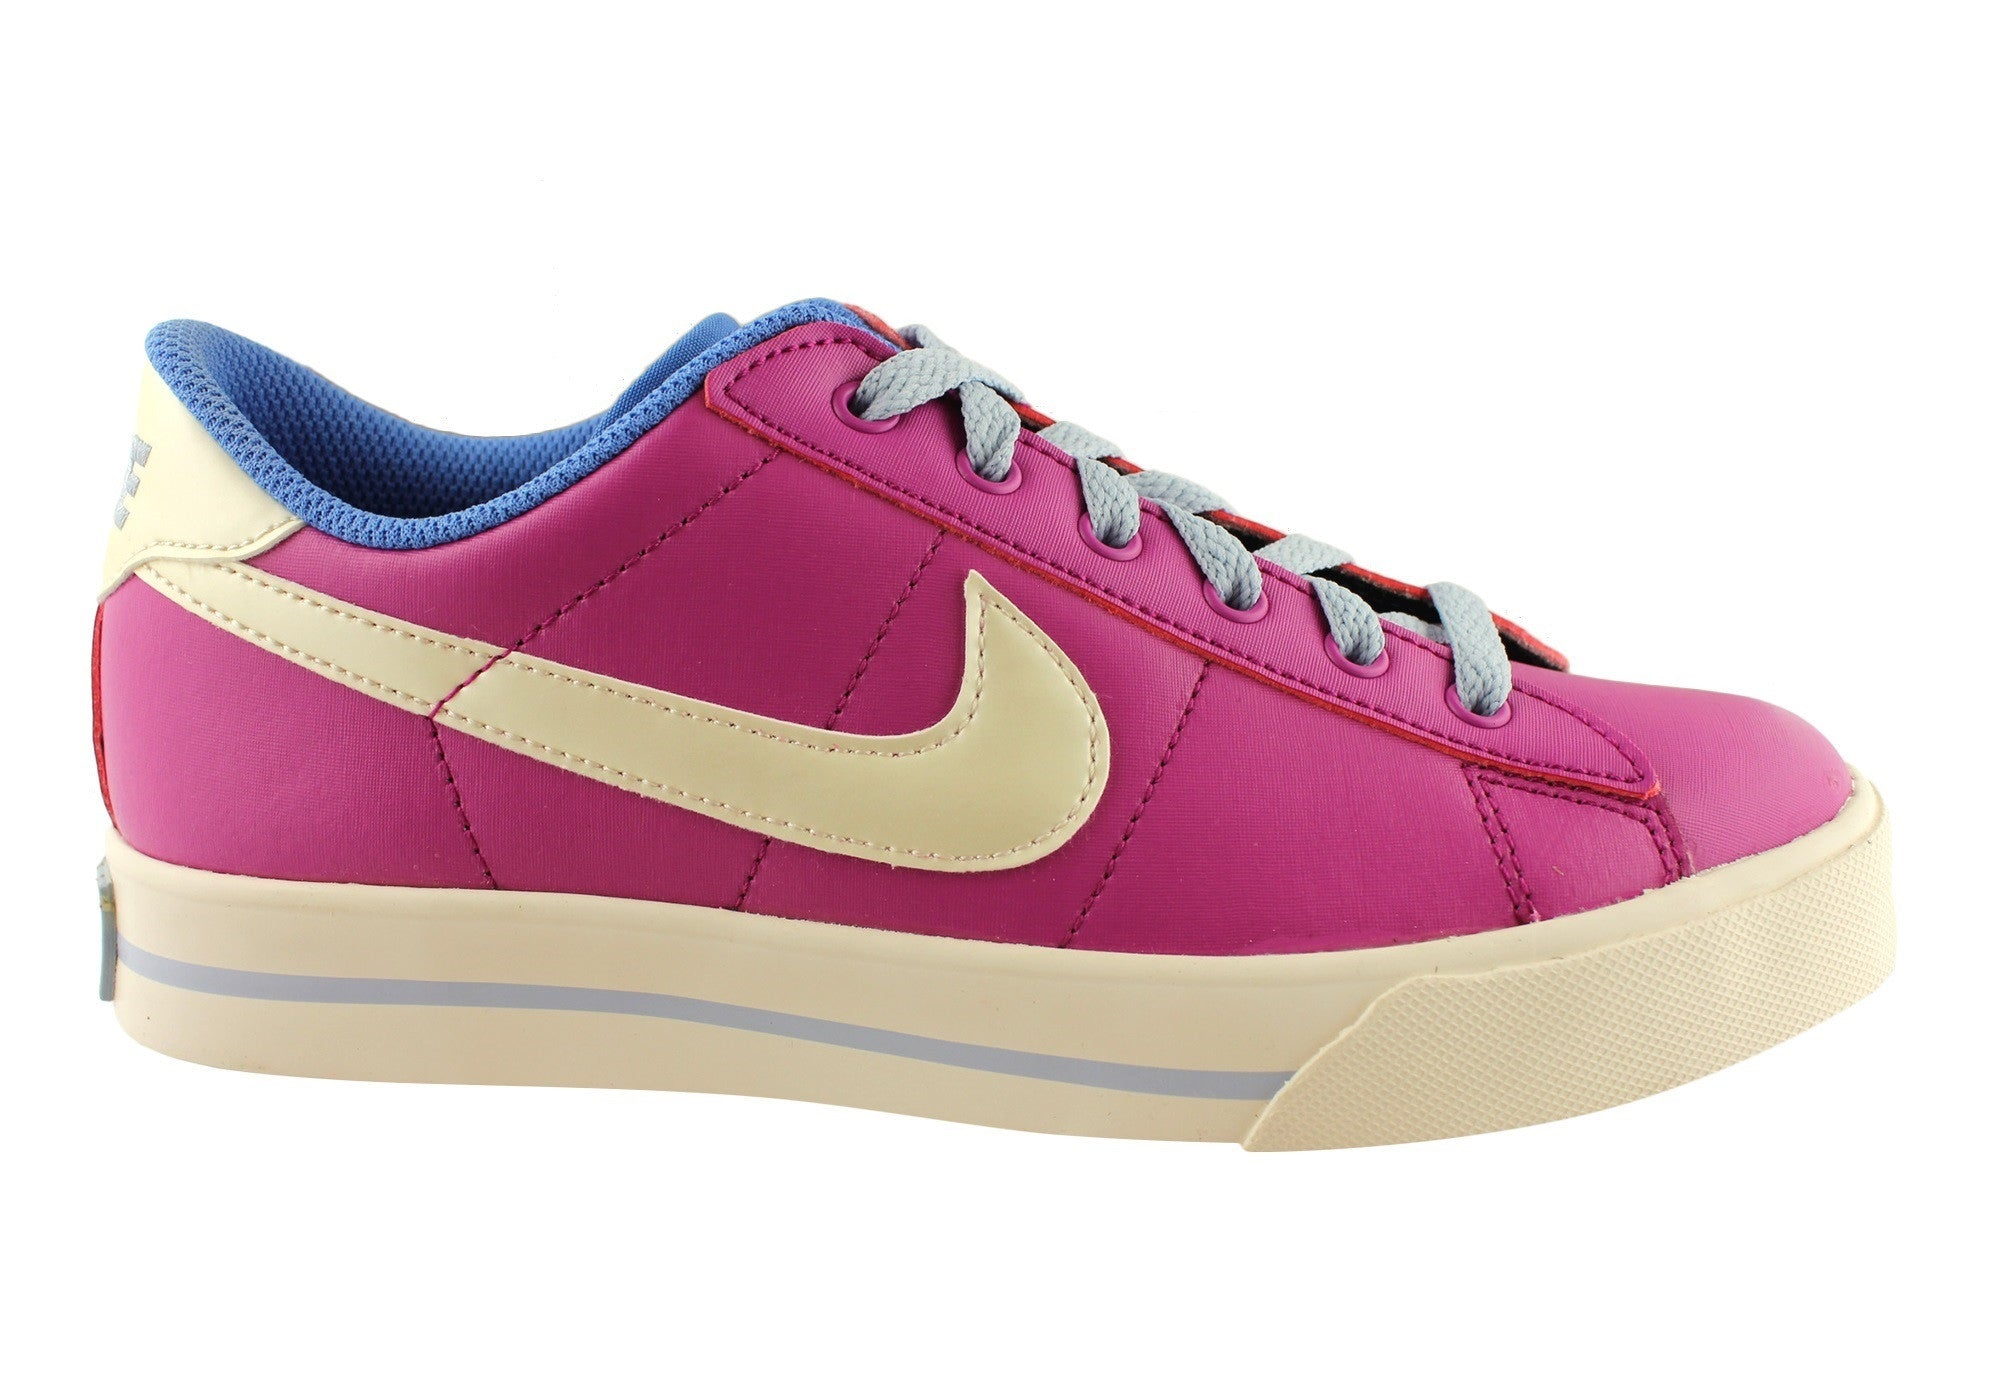 Nike Sweet Classic Leather Womens Comfortable Casual Shoes  6012e4dc5